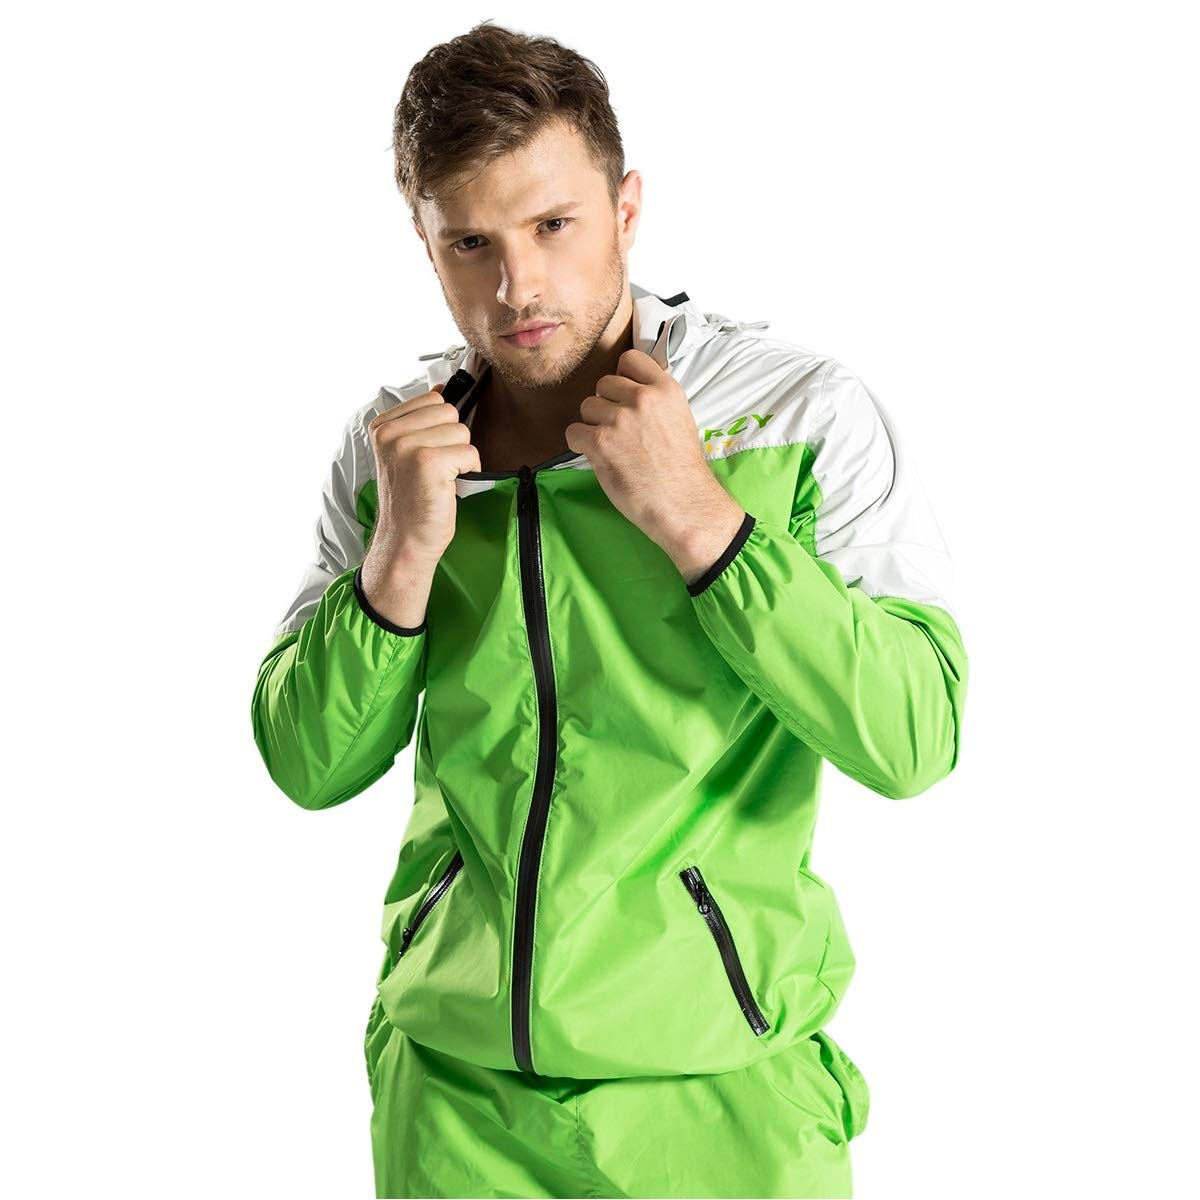 DNRZY Sauna Sweat Suits Weight Loss for Men Body Shaping Running Sport Suits Workout Clothes Fat Burner Fitness Durable Waterproof Hoodie Jacket Paints Suits Gym Training Workout Suits